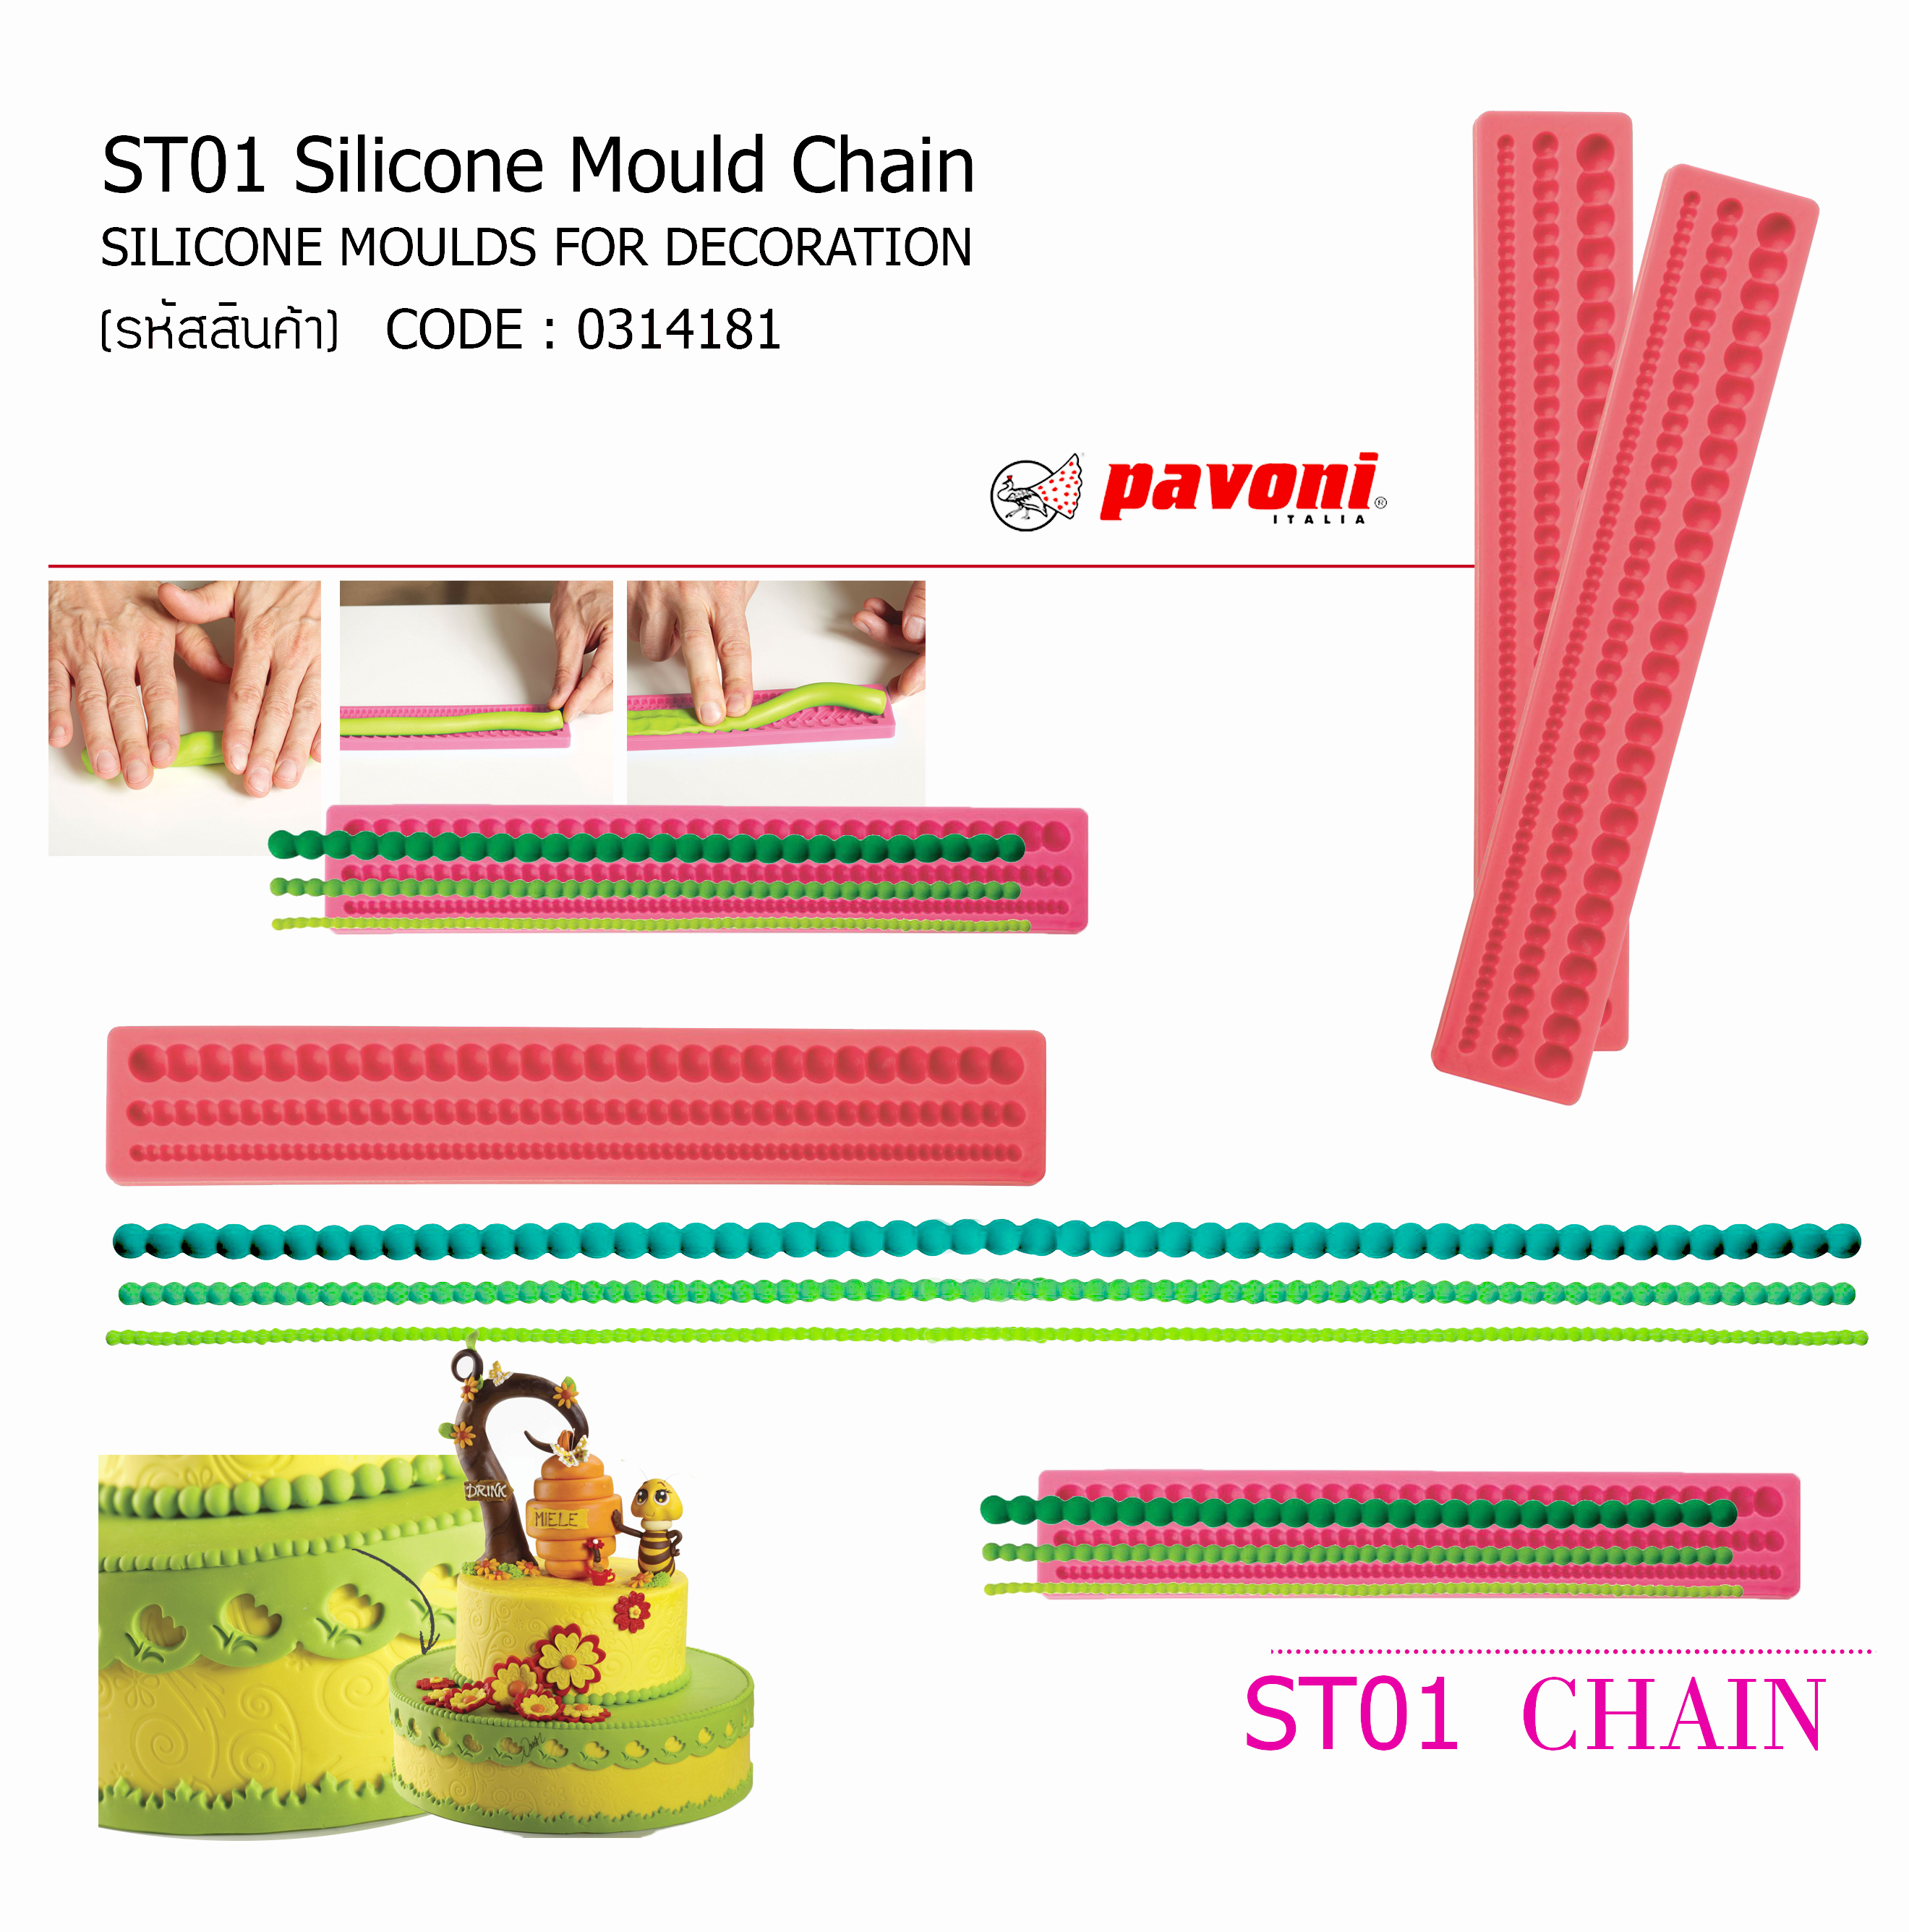 ST01 Silicone Mould Chain